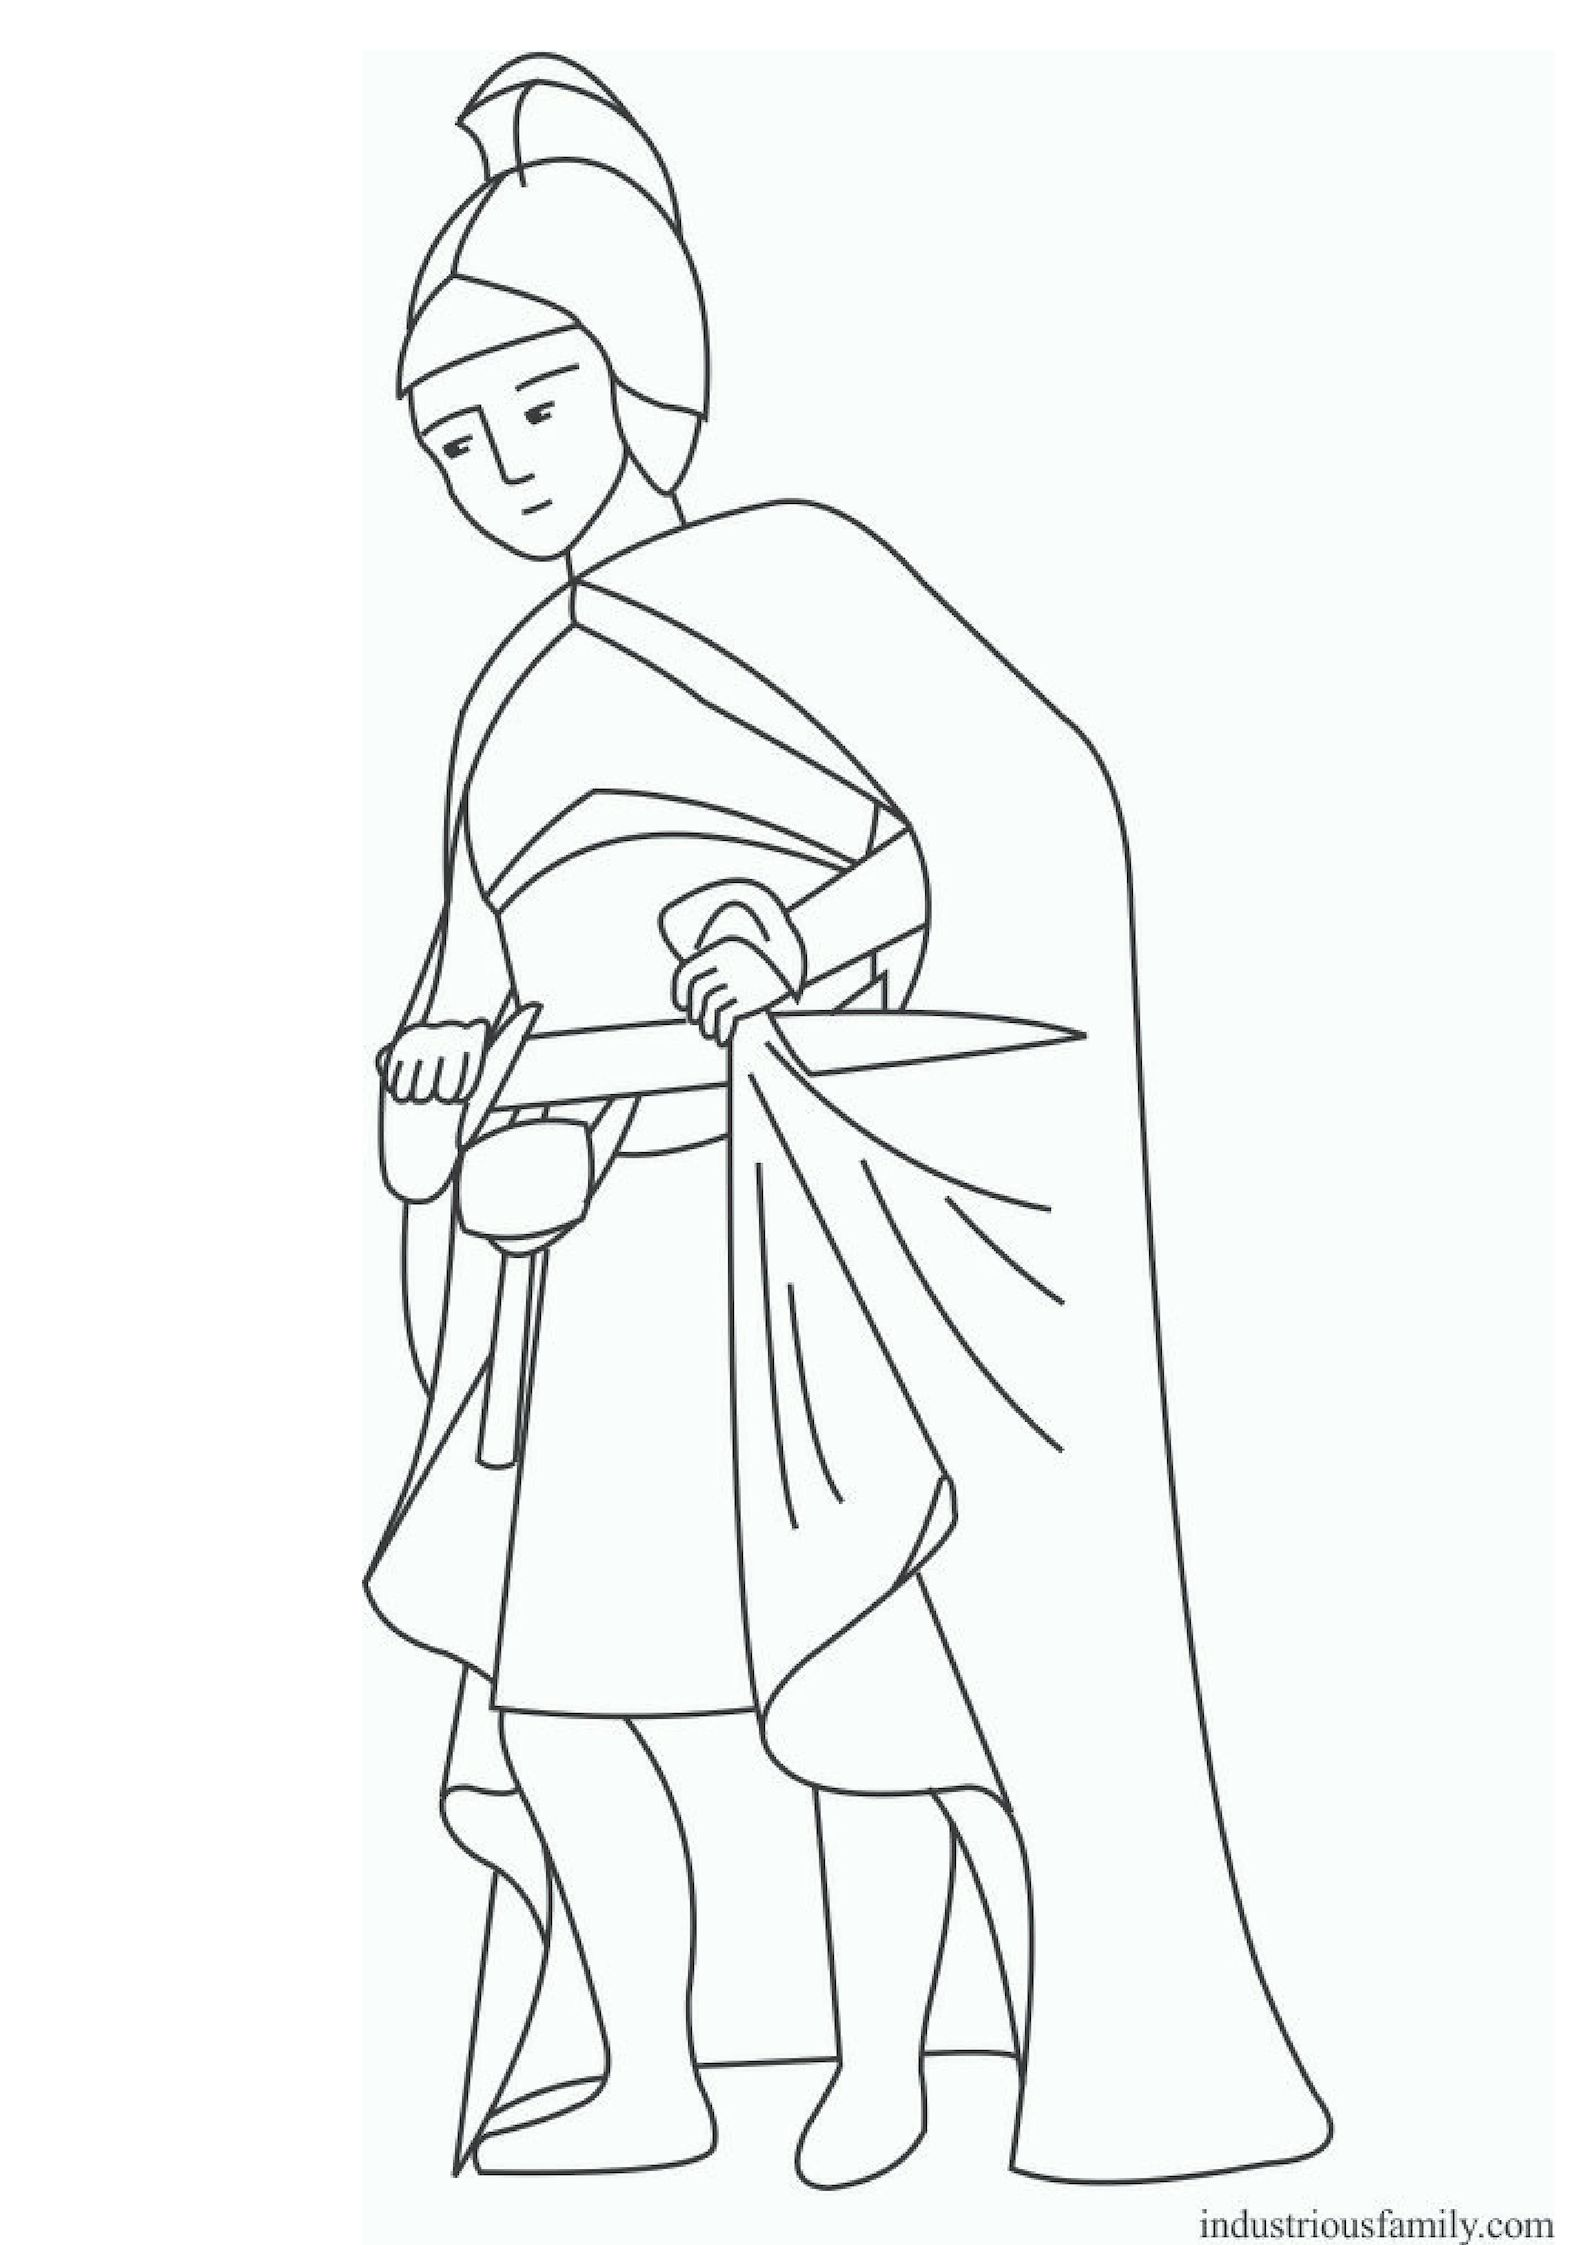 Free Coloring Pages For Catholics With Images Free Coloring